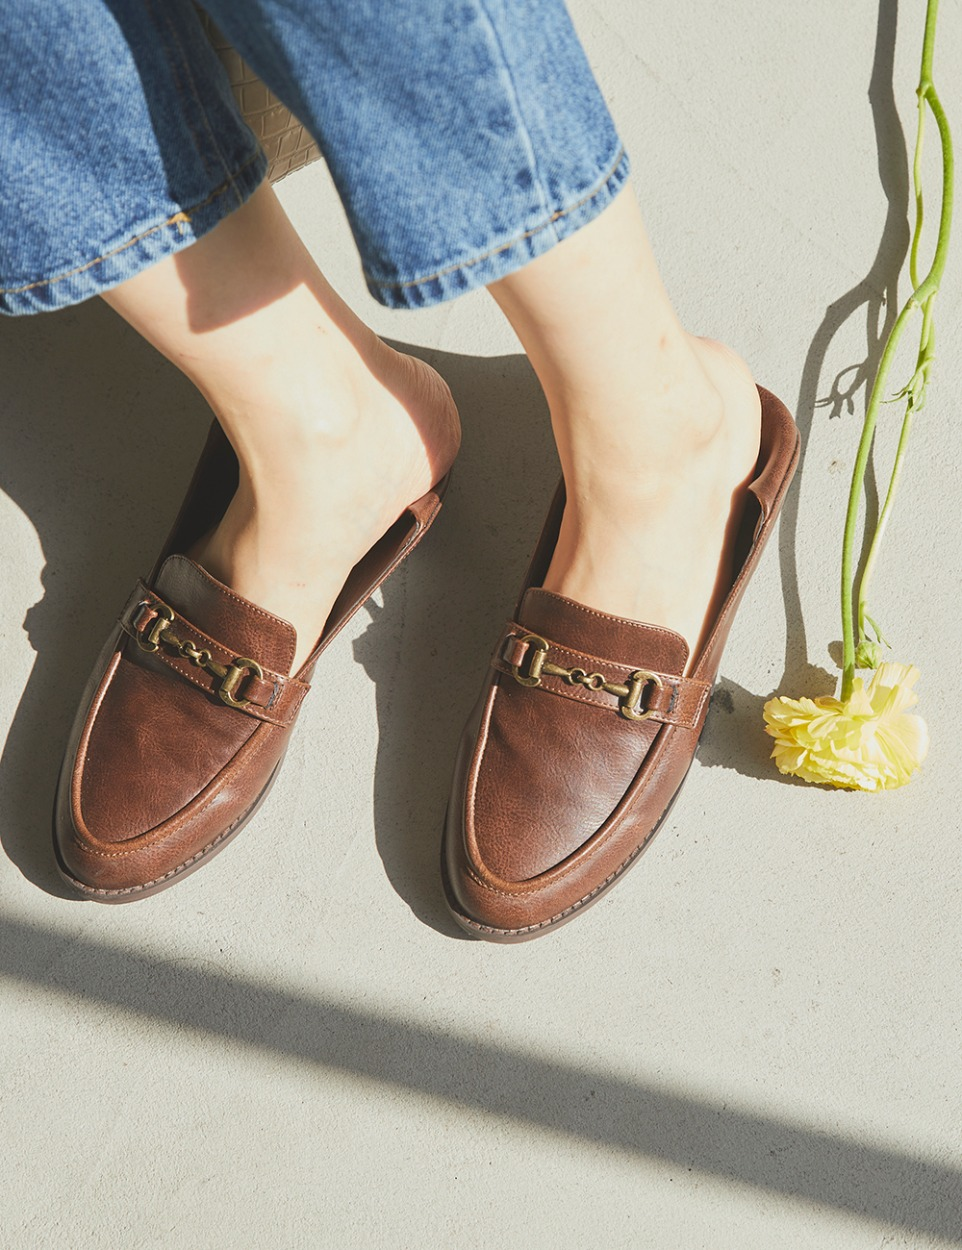 【PRE】RB classic loafer